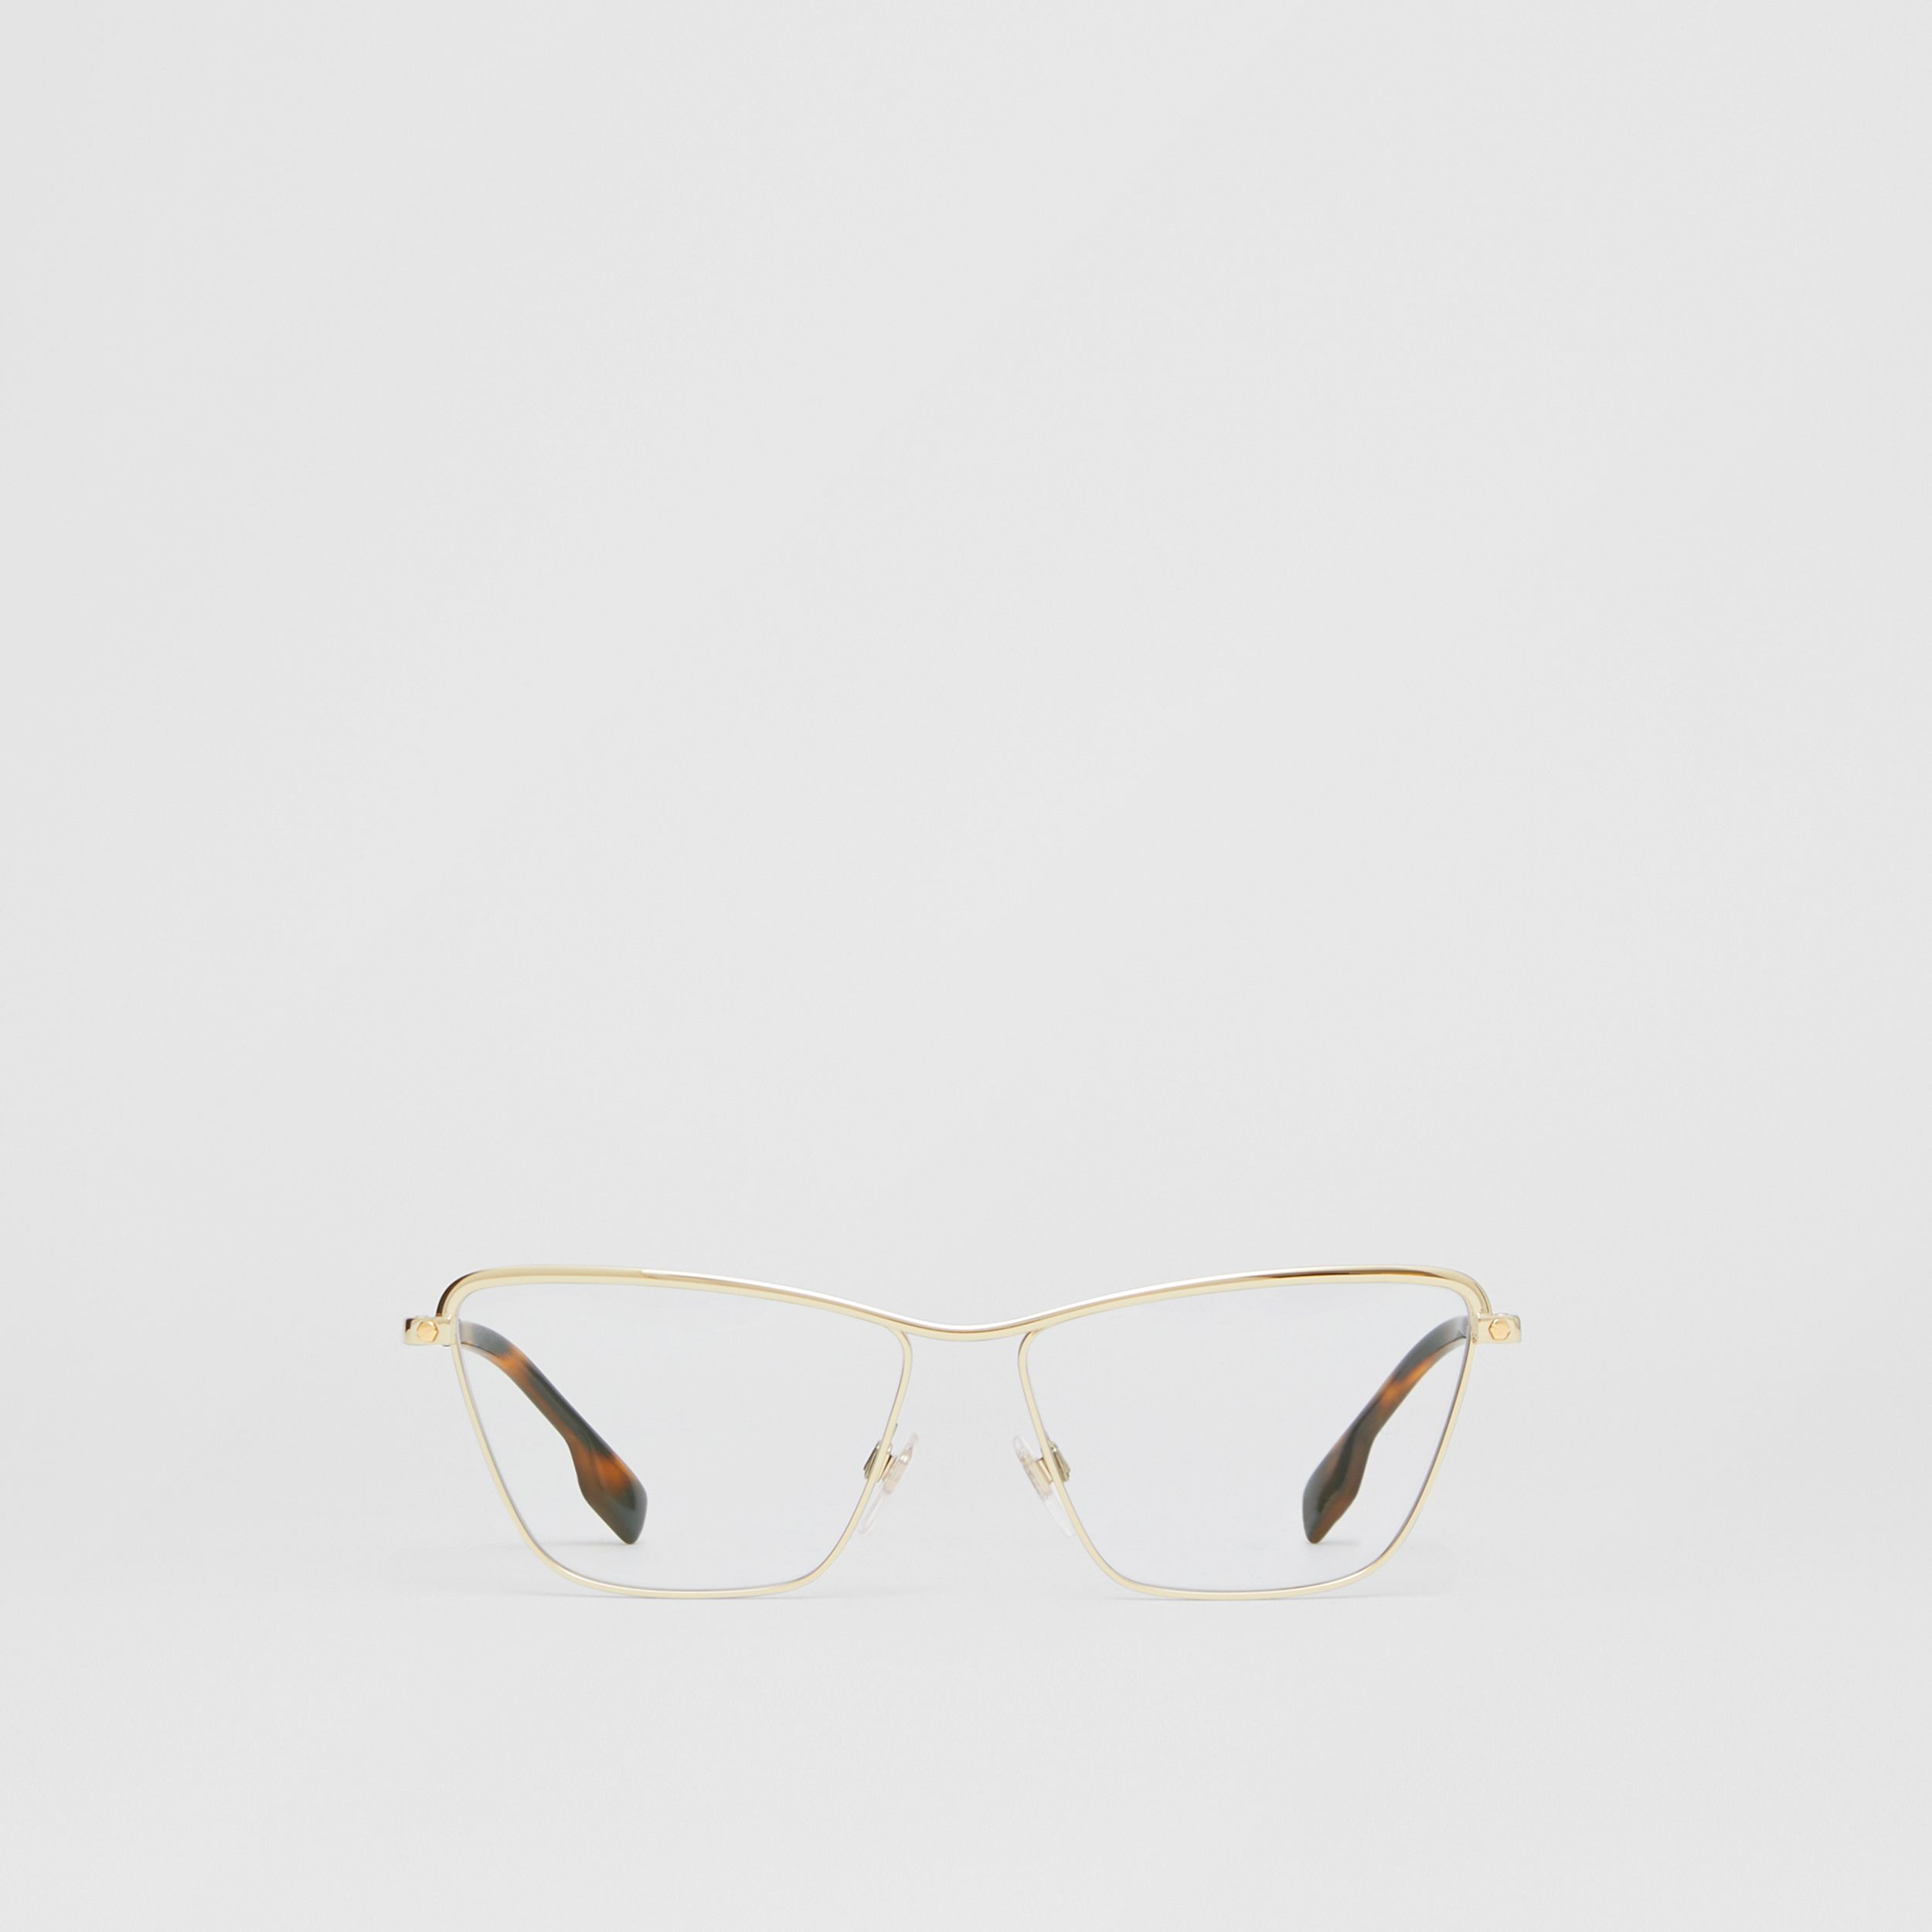 Rectangular Optical Frames in Light Gold - Women | Burberry - 1